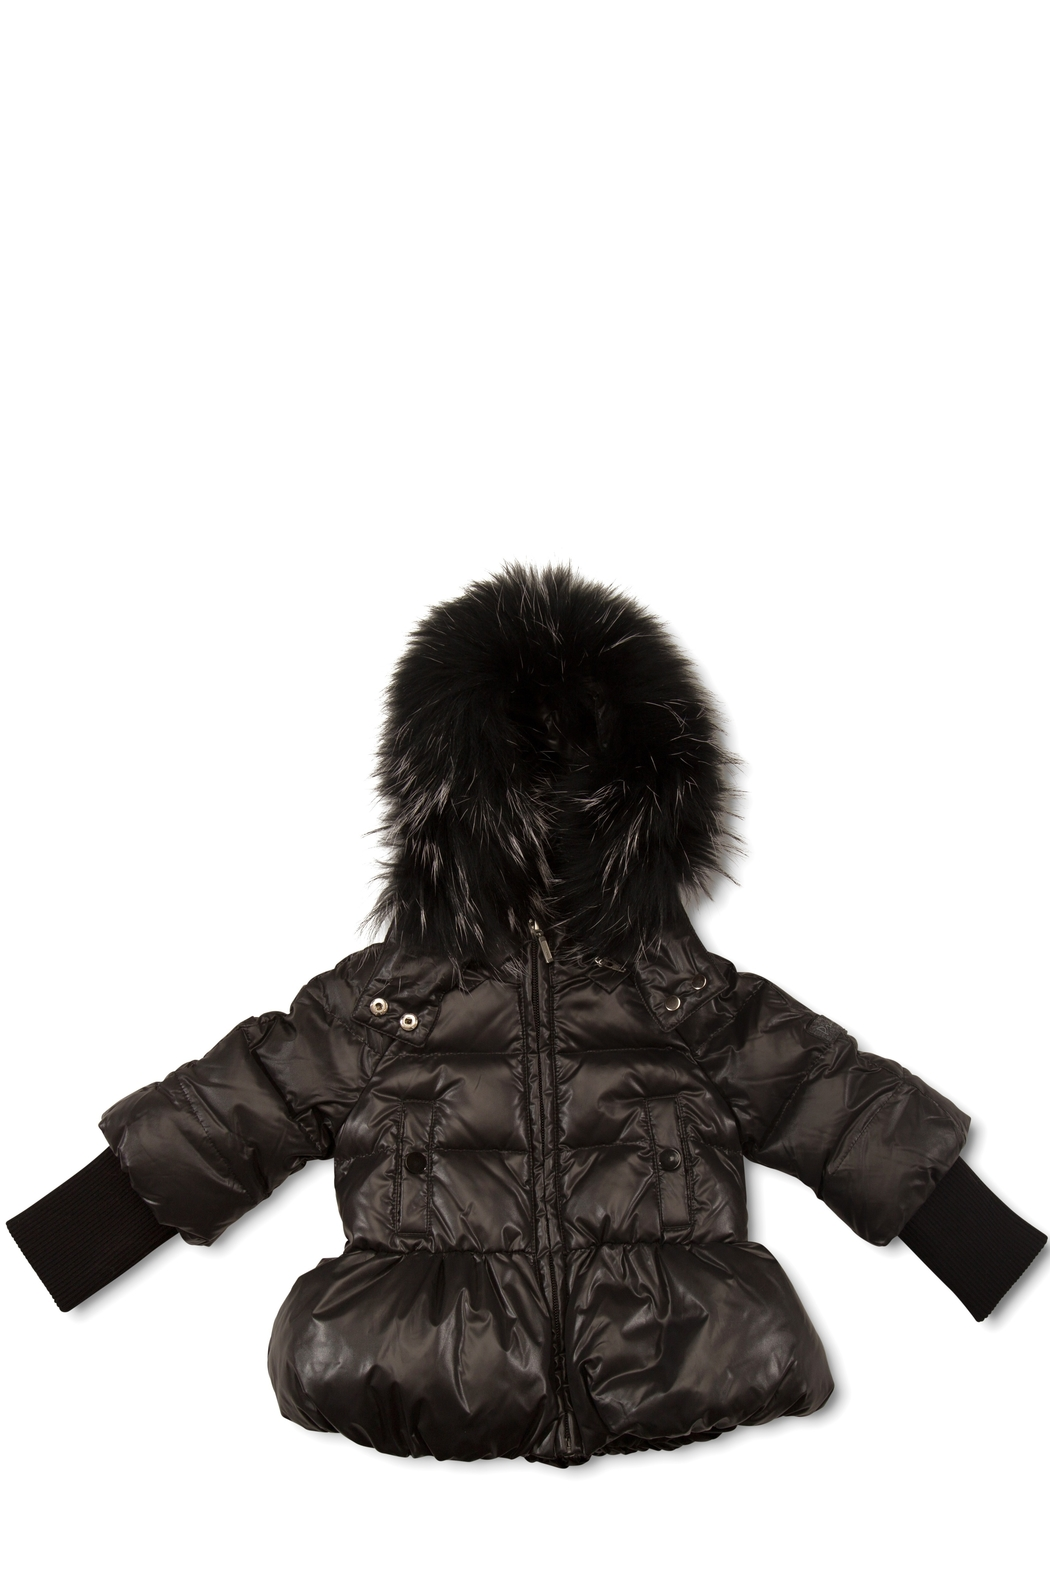 PRAMIE Pramie Down Filled Pouf Jacket with Detachable Fur for Girls | Winterwear Clothes - Main Image